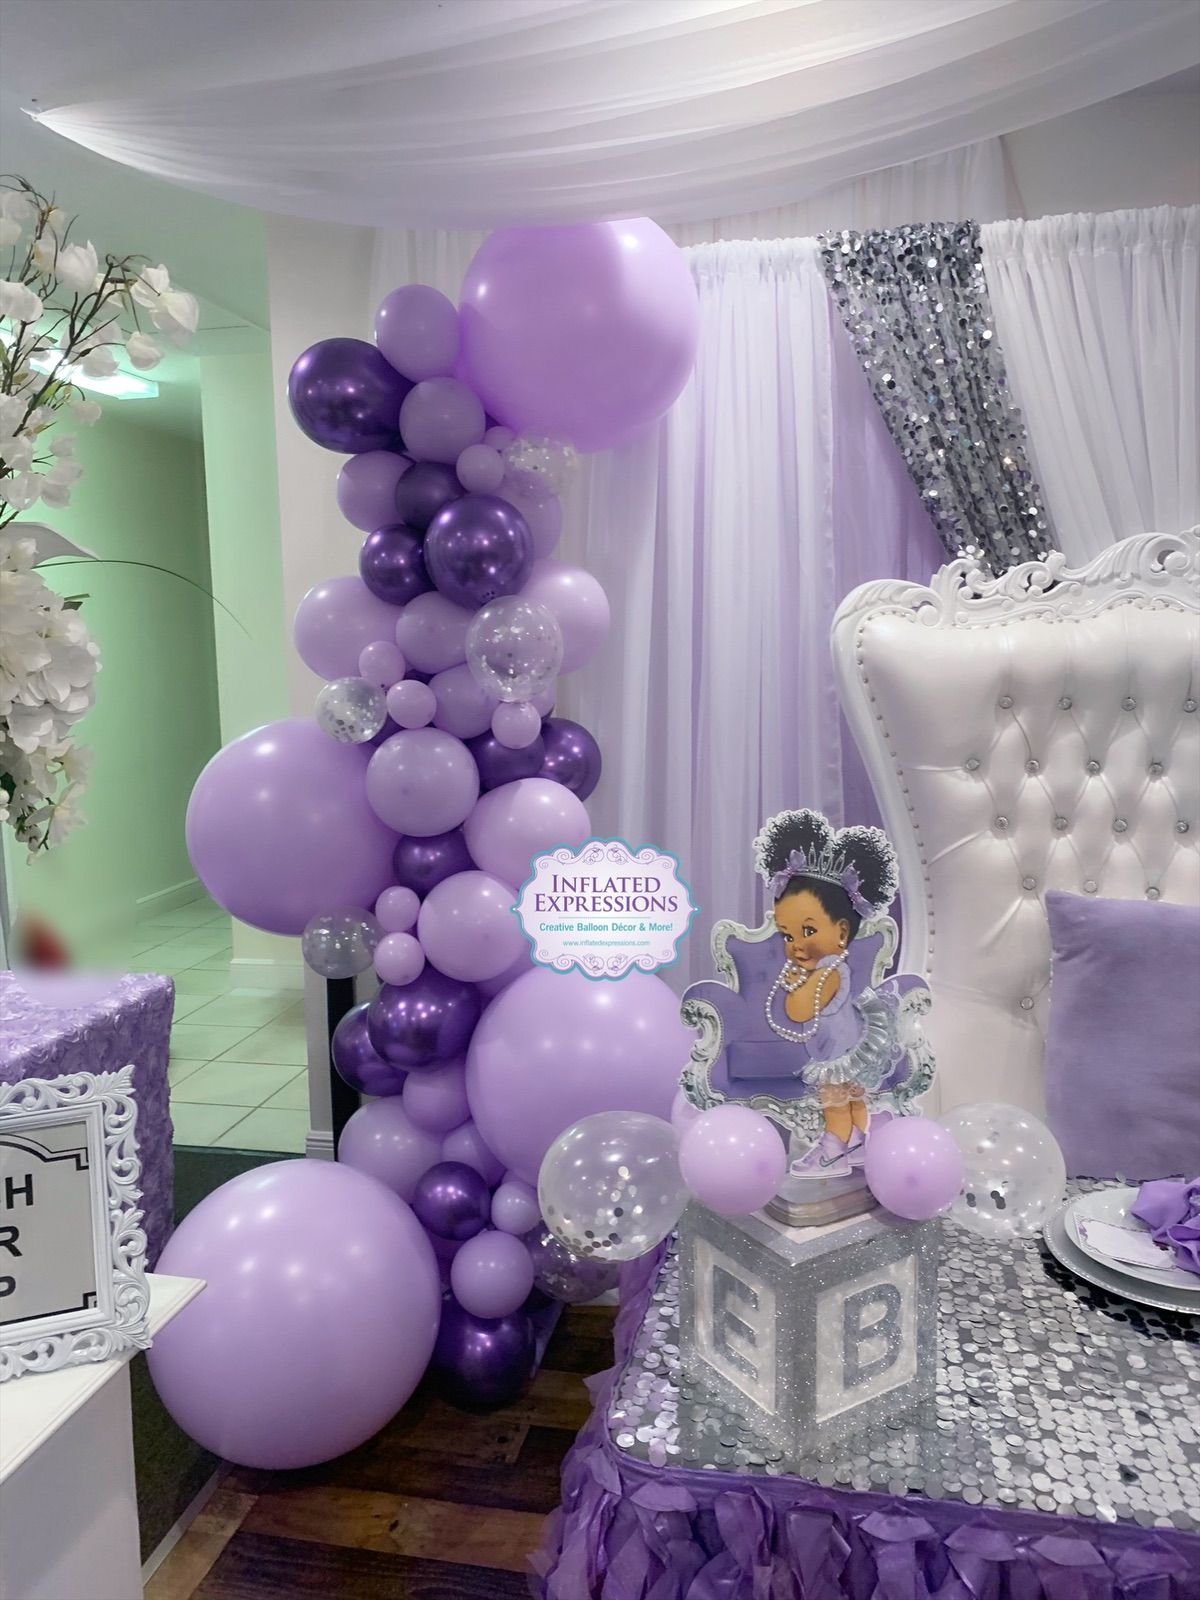 Purple Baby Shower Themes For Girls : purple, shower, themes, girls, Organic, Balloon, Garland, Column, Shower, Decorations, Themes,, Decorations,, Lavender, Showers